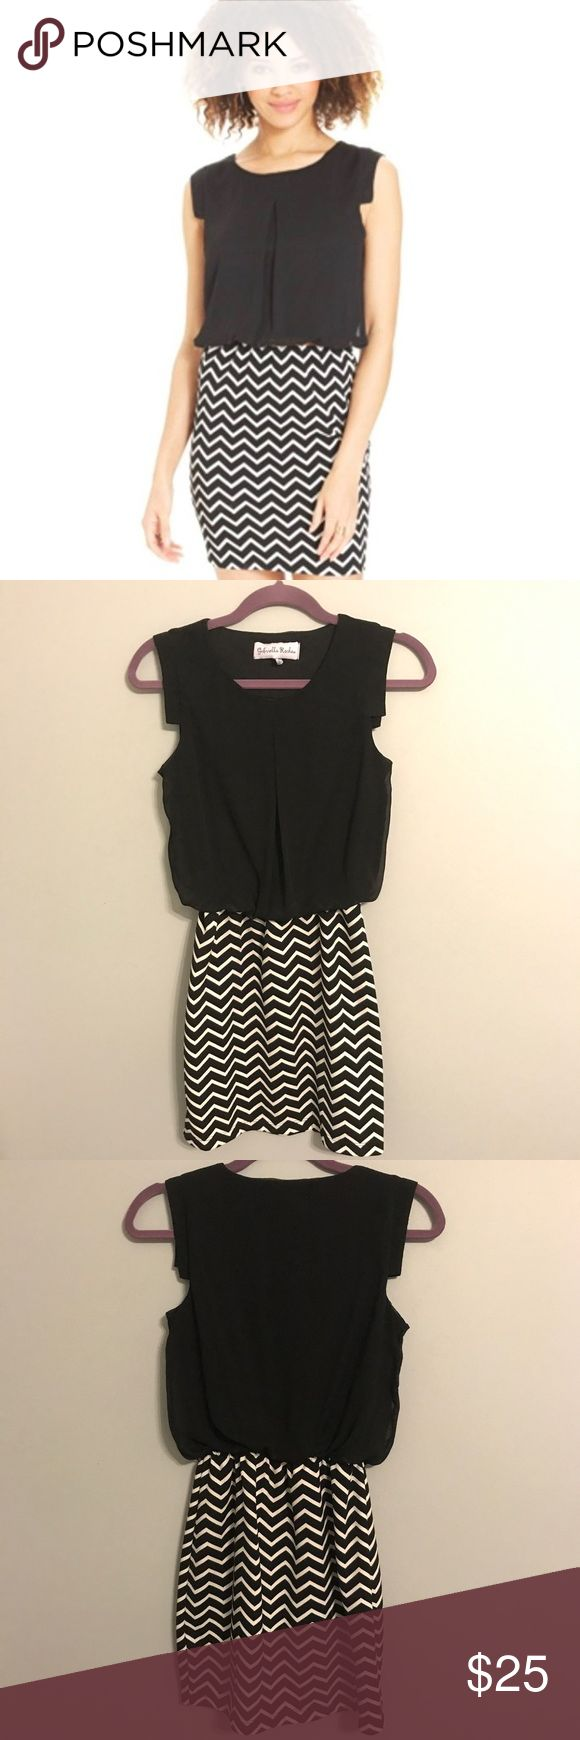 Gabriella Rocha Chevron Dress Gabriella Rocha - Cat Crepe Chevron Dress (Black/Ivory) Women's Dress Size XS. Excellent condition. Belt missing. Gabriella Rocha Dresses